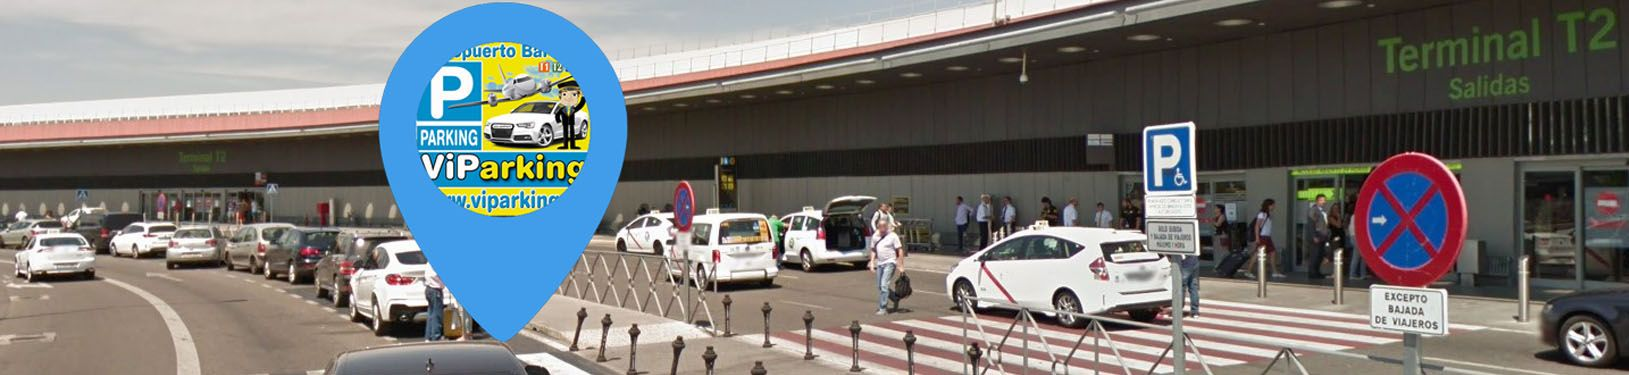 parking aeropuerto barajas t1